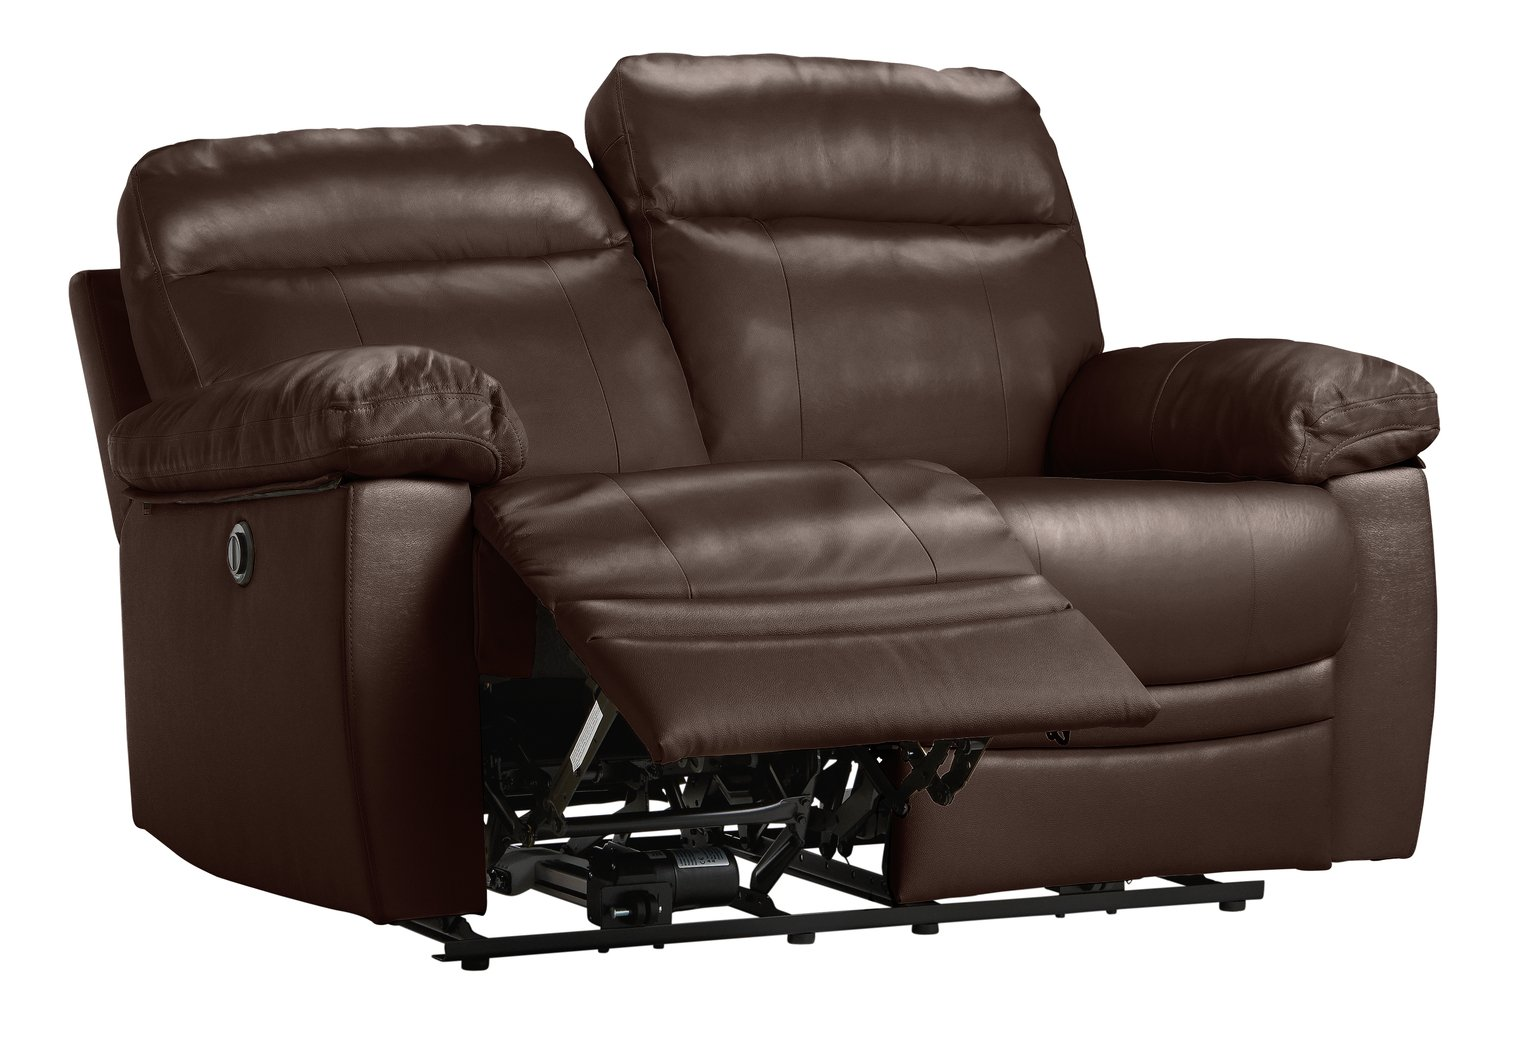 electric recliner leather sofas uk sofa mart futons buy argos home paolo 2 seater power brown